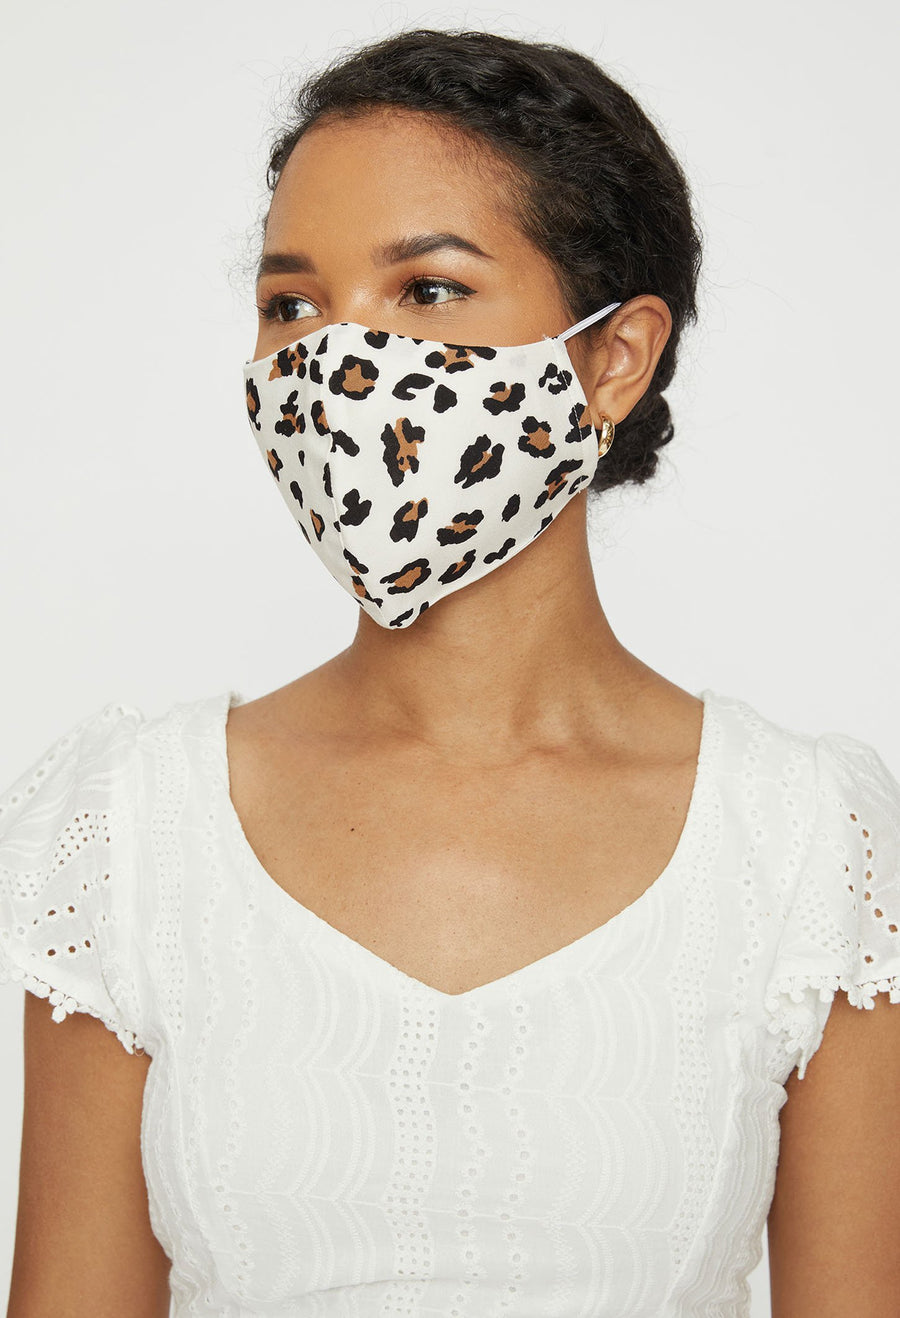 Adjustable Adult Face Mask - White Animal Print